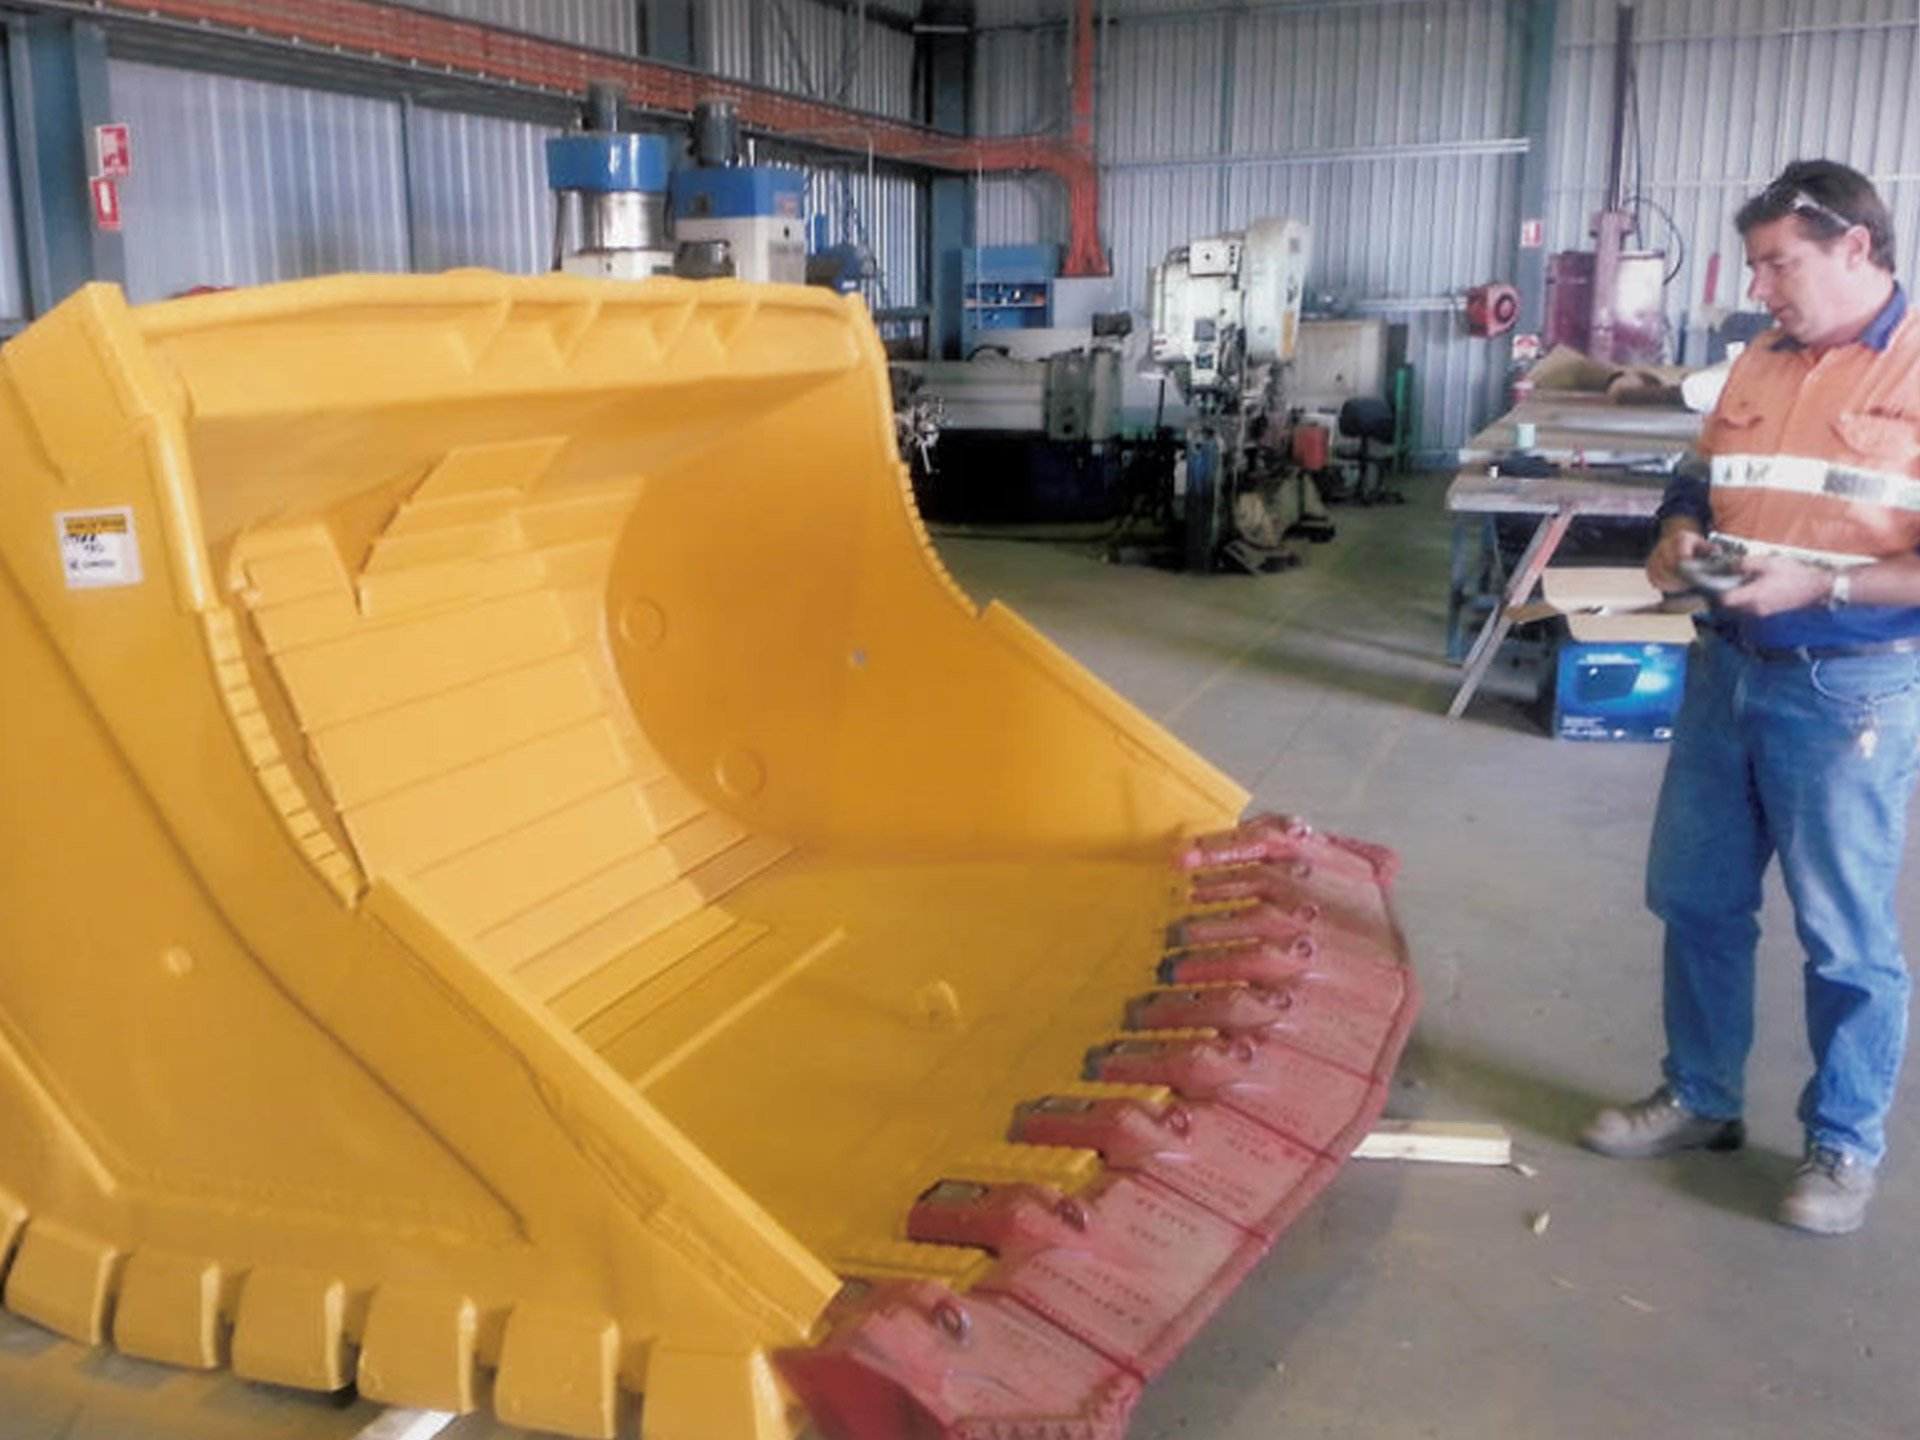 View of the fabrication work done by expert